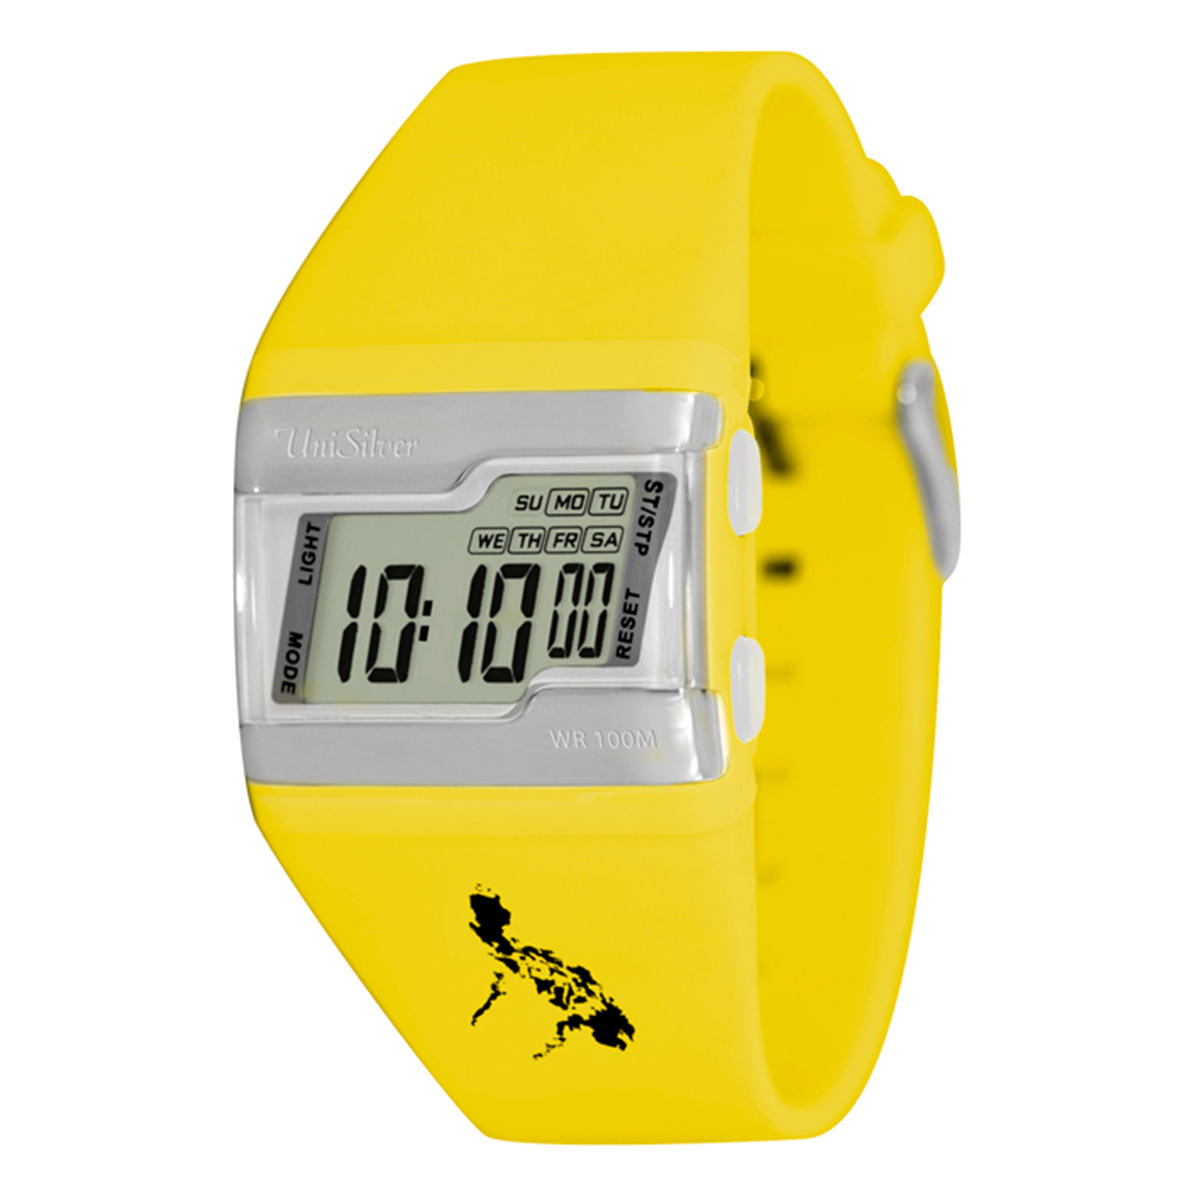 UniSilver TIME Makabayan FLXY Baller Men's Yellow Rubber Strap Watch